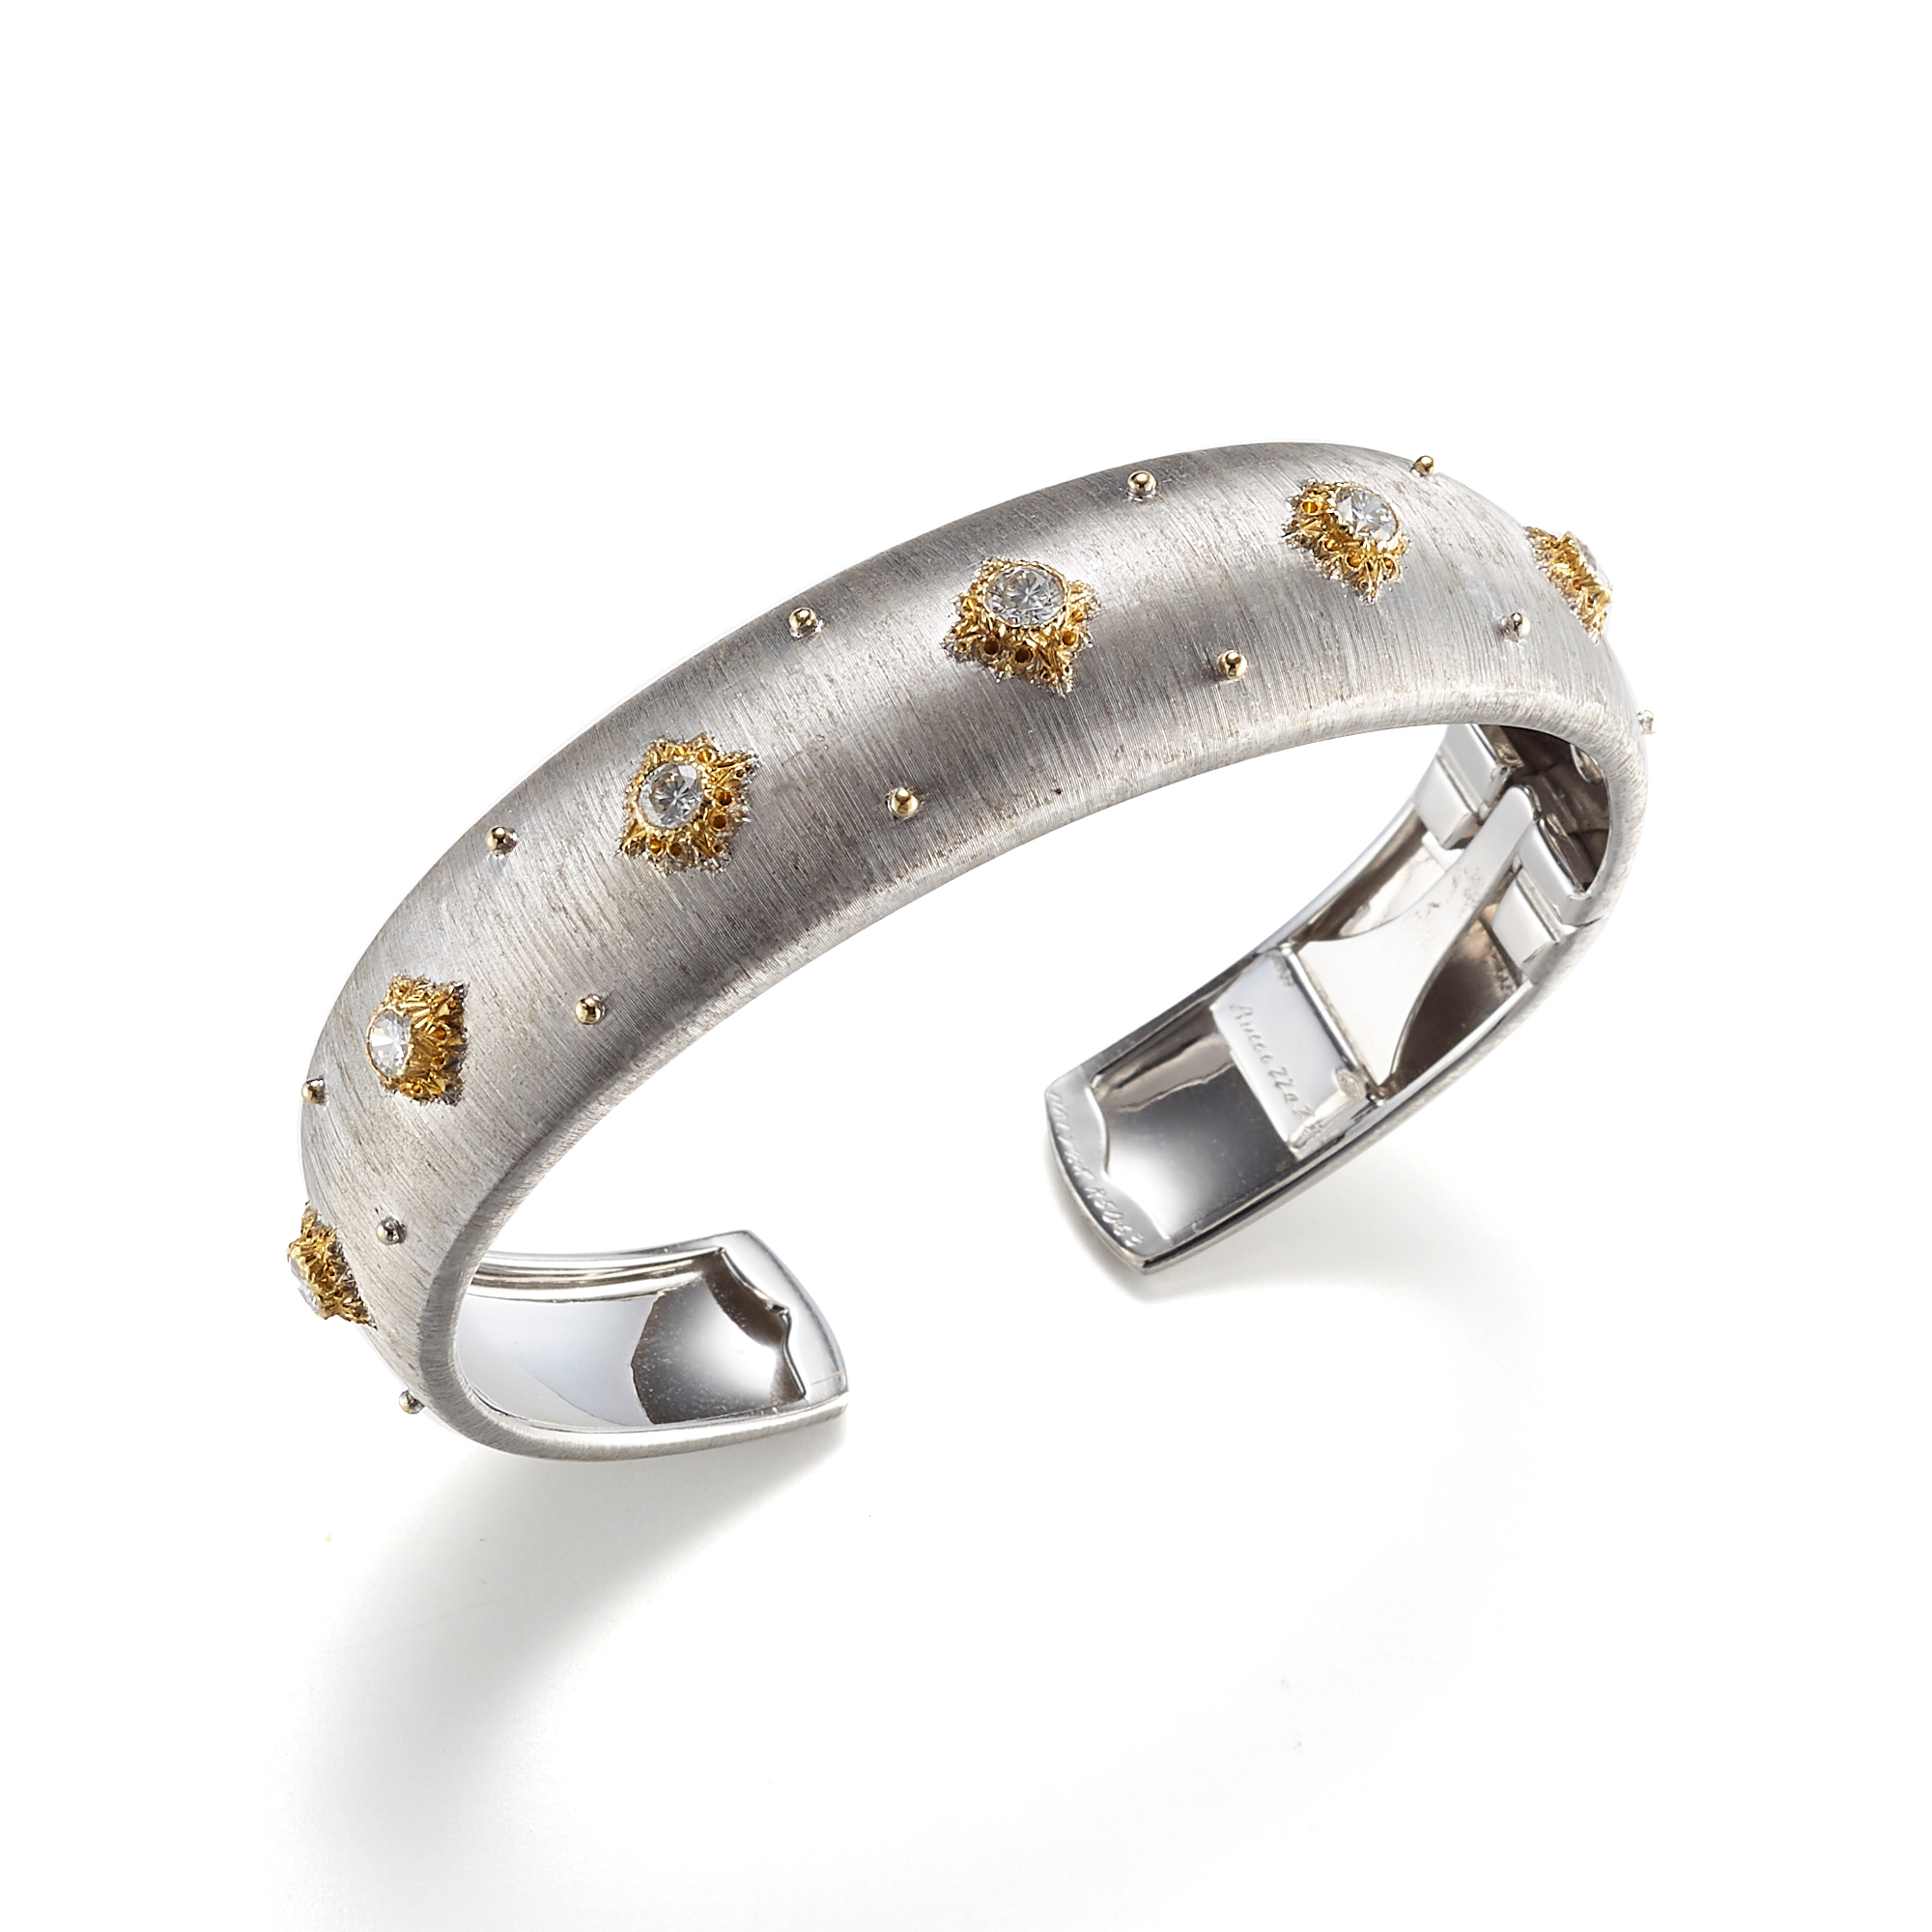 Buccellati Macri Cuff 15mm Bracelet in White Gold with Diamonds